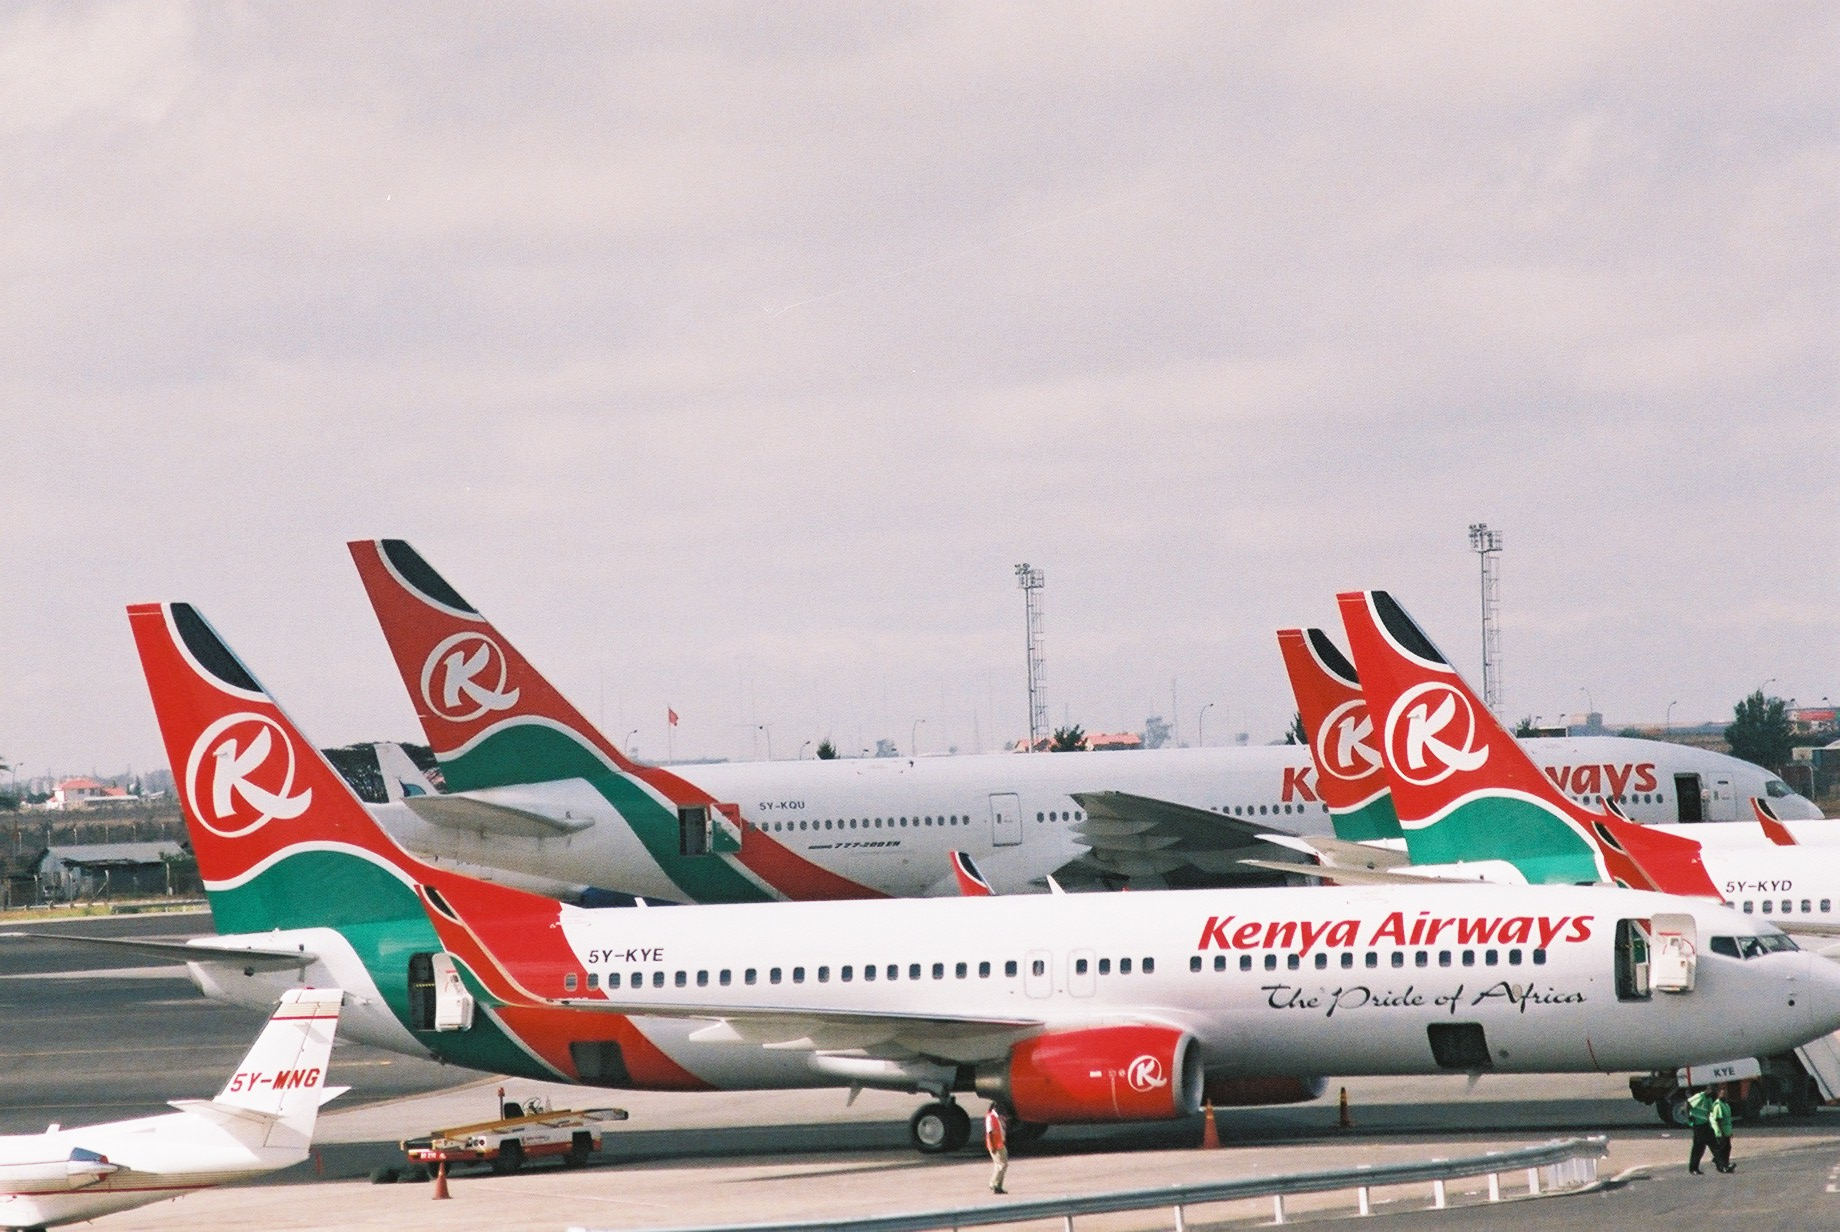 Kenya Airways to resume flights to Accra and Freetown